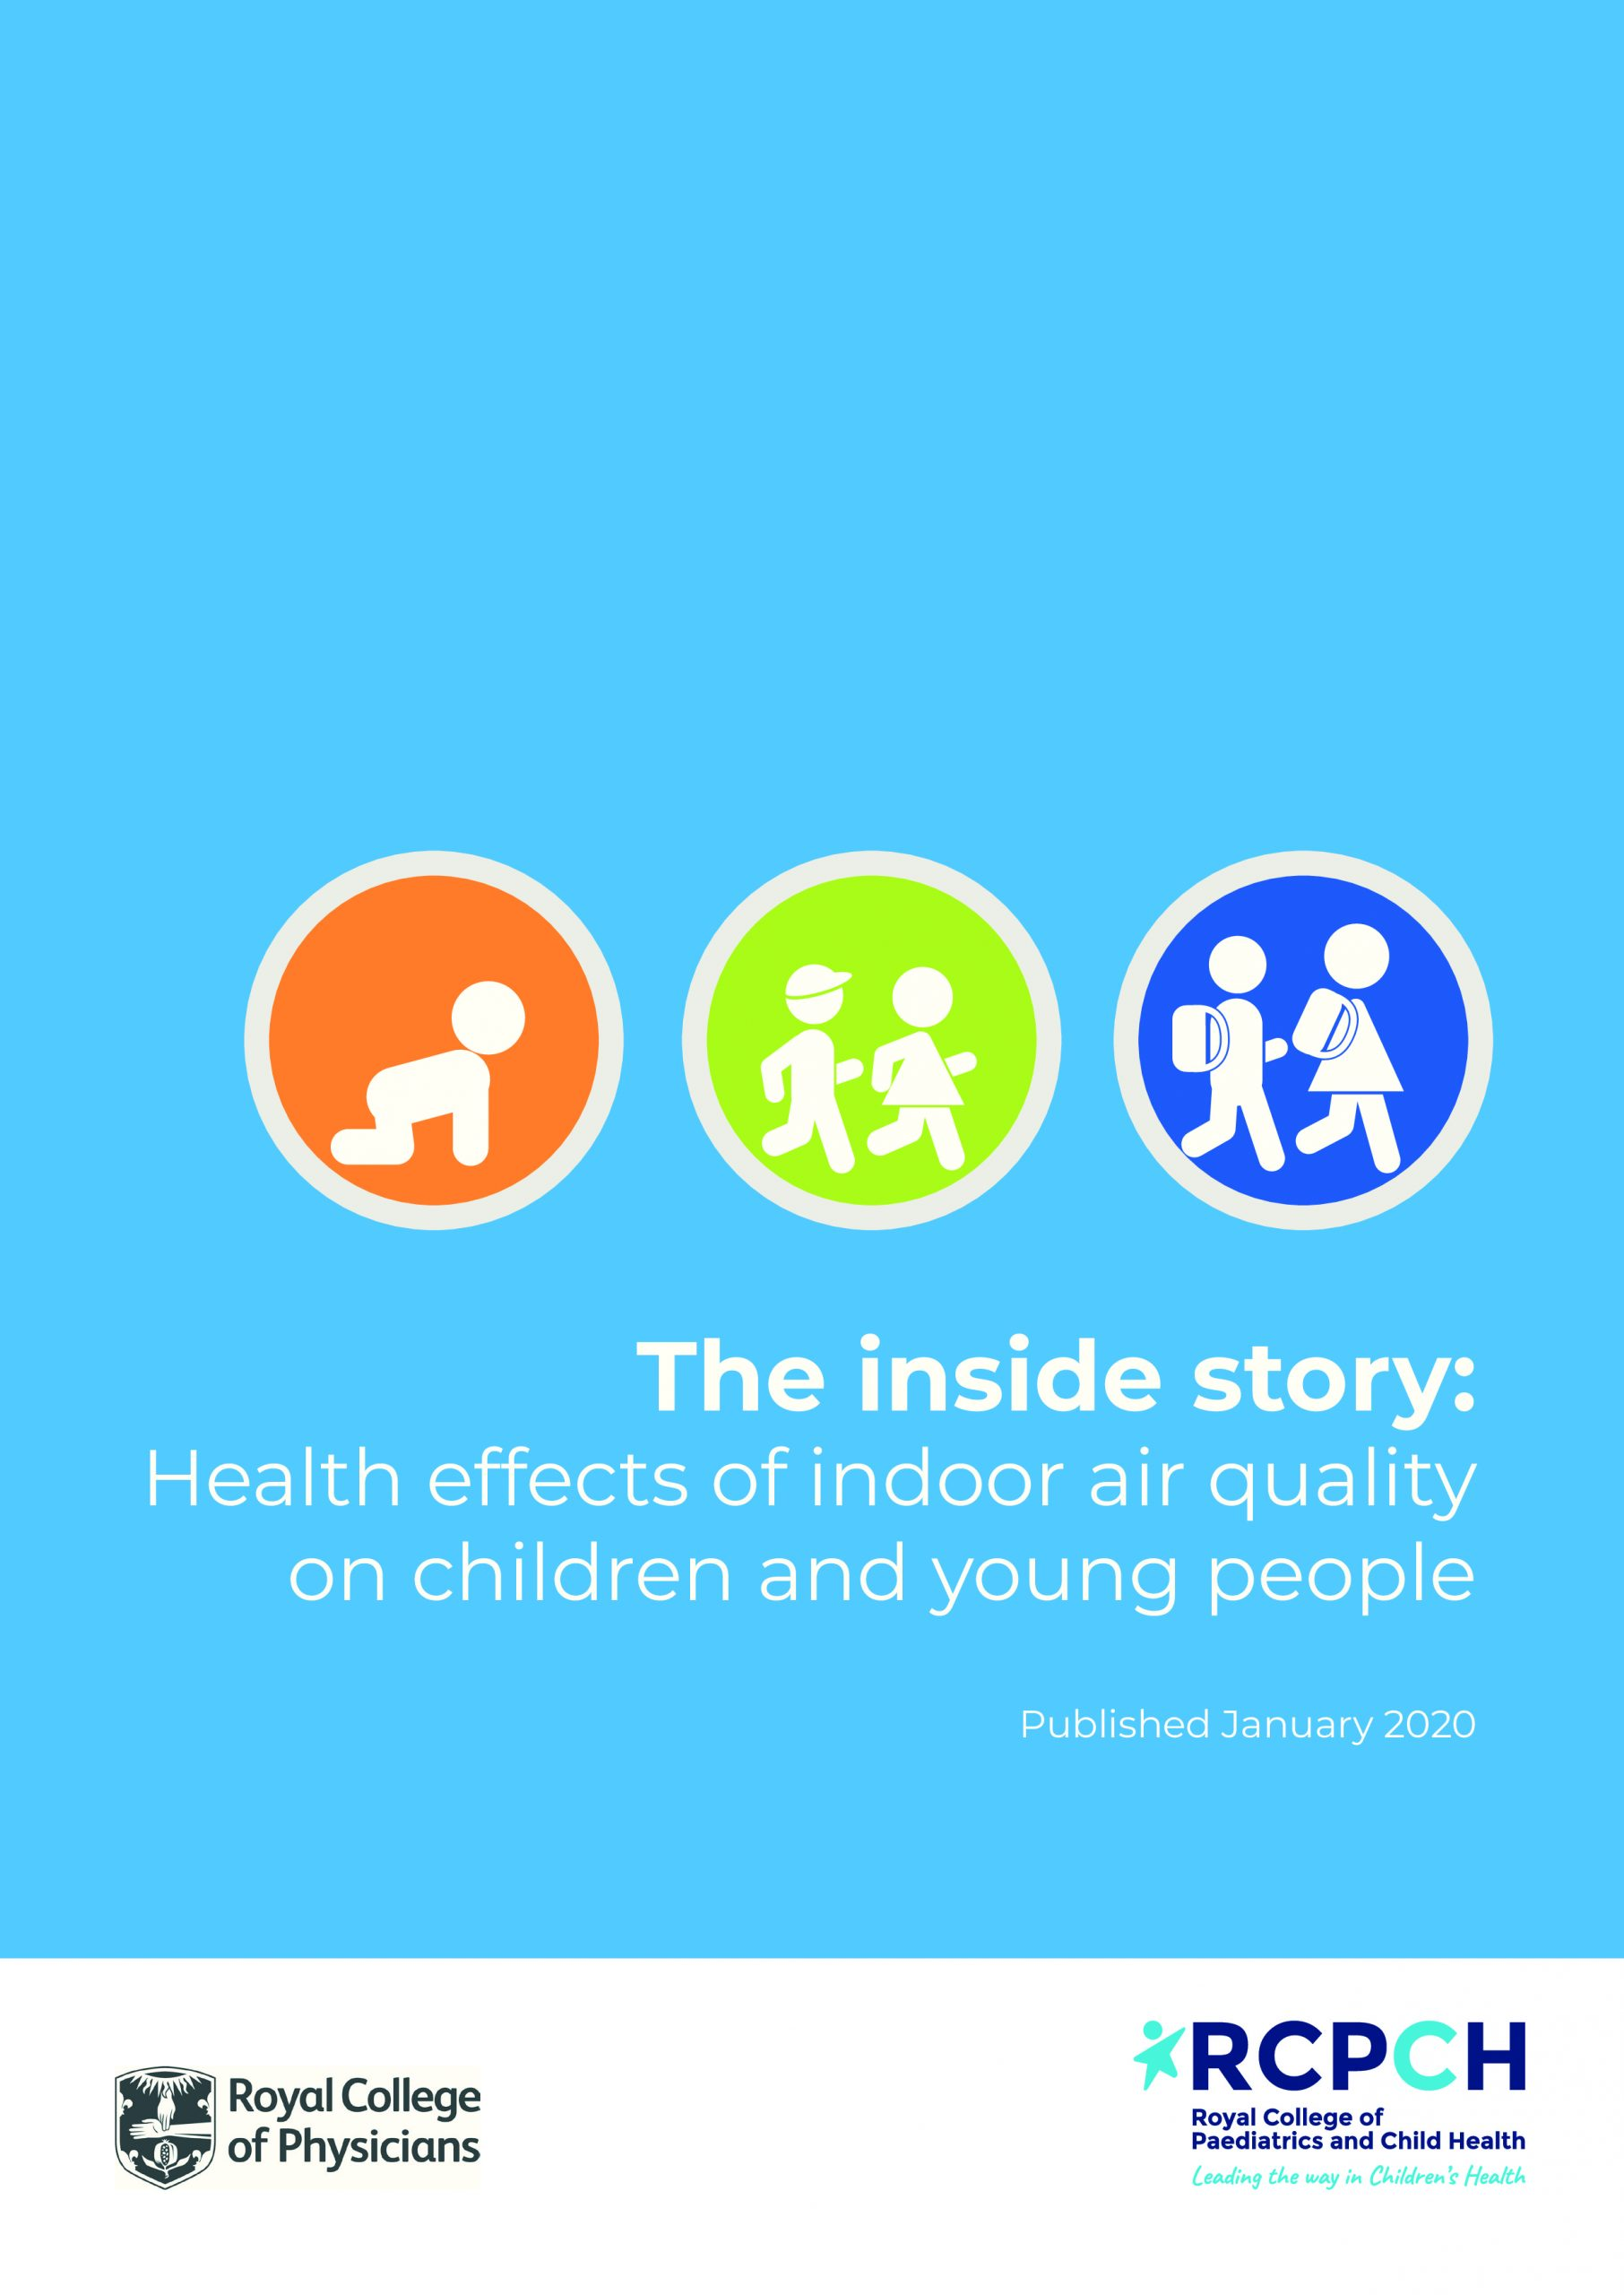 The inside story: Health effects of indoor air quality on children and young people